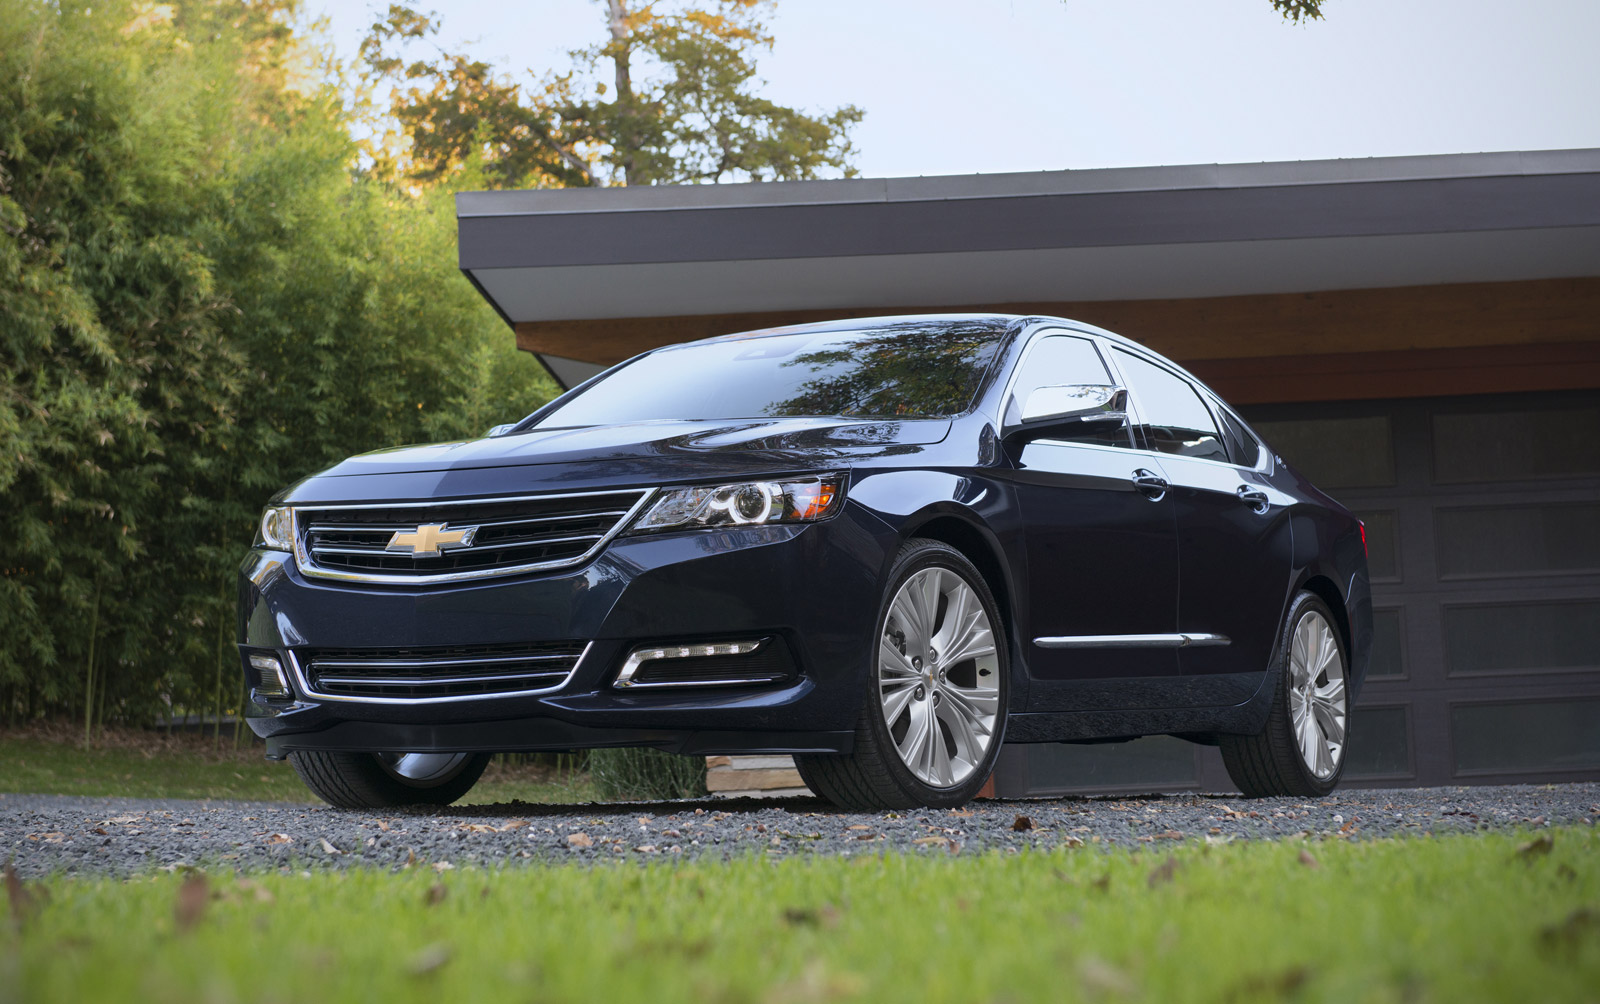 Electric Cars Vs Gas Cars >> 2015 Chevrolet Impala Gets Start-Stop, But Hybrid 'Eco' Gone